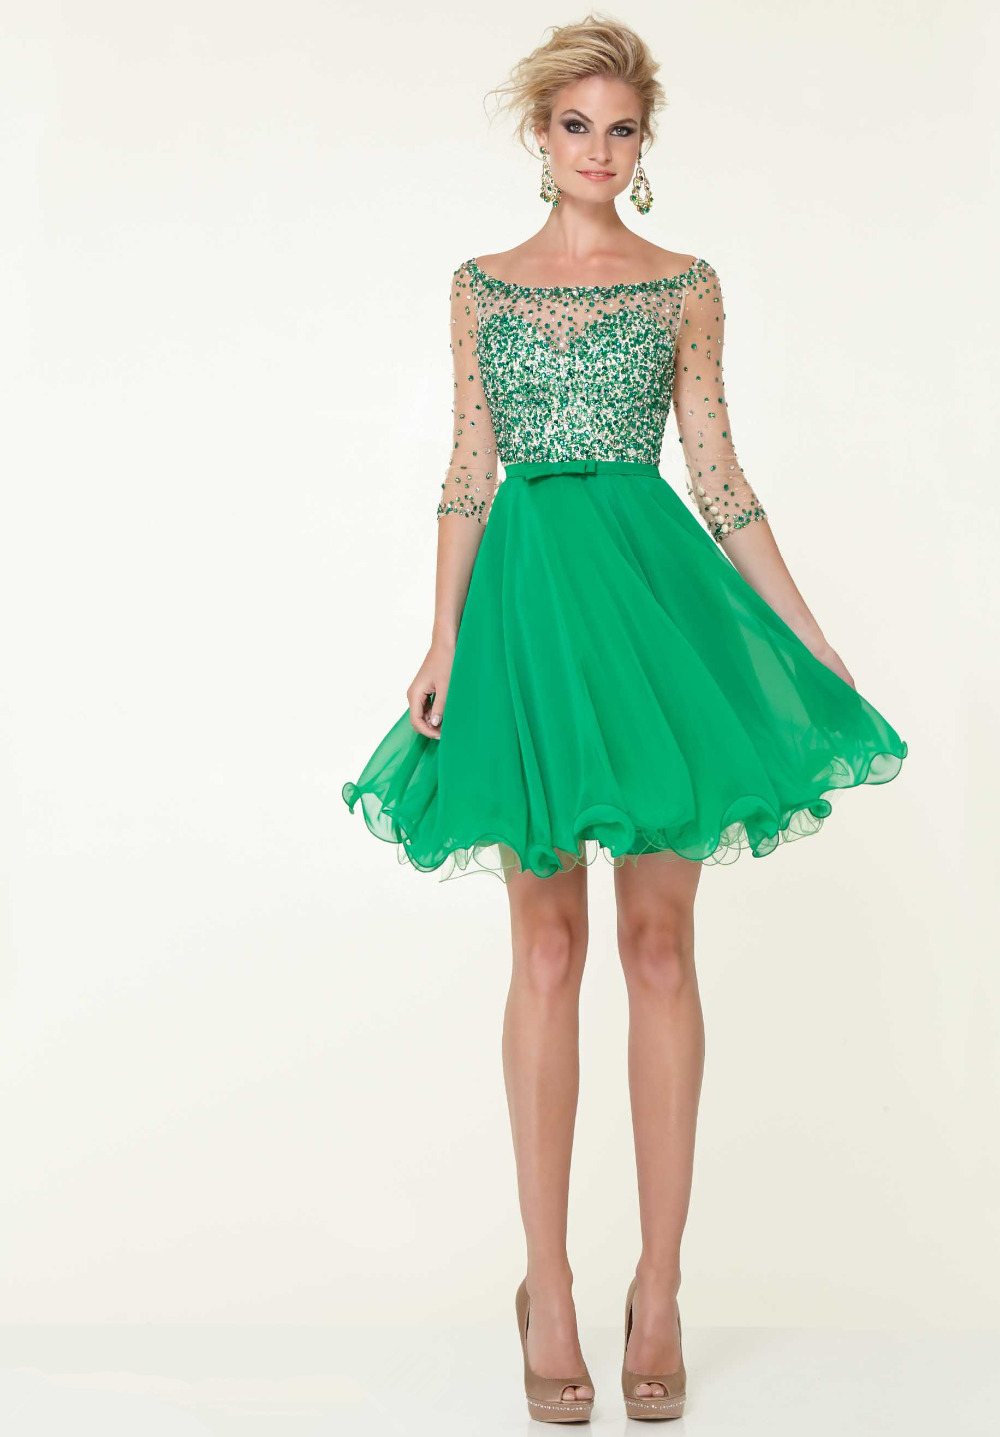 Aliexpress.com : Buy Hot Sale Green Short Homecoming Dresses 8th ...